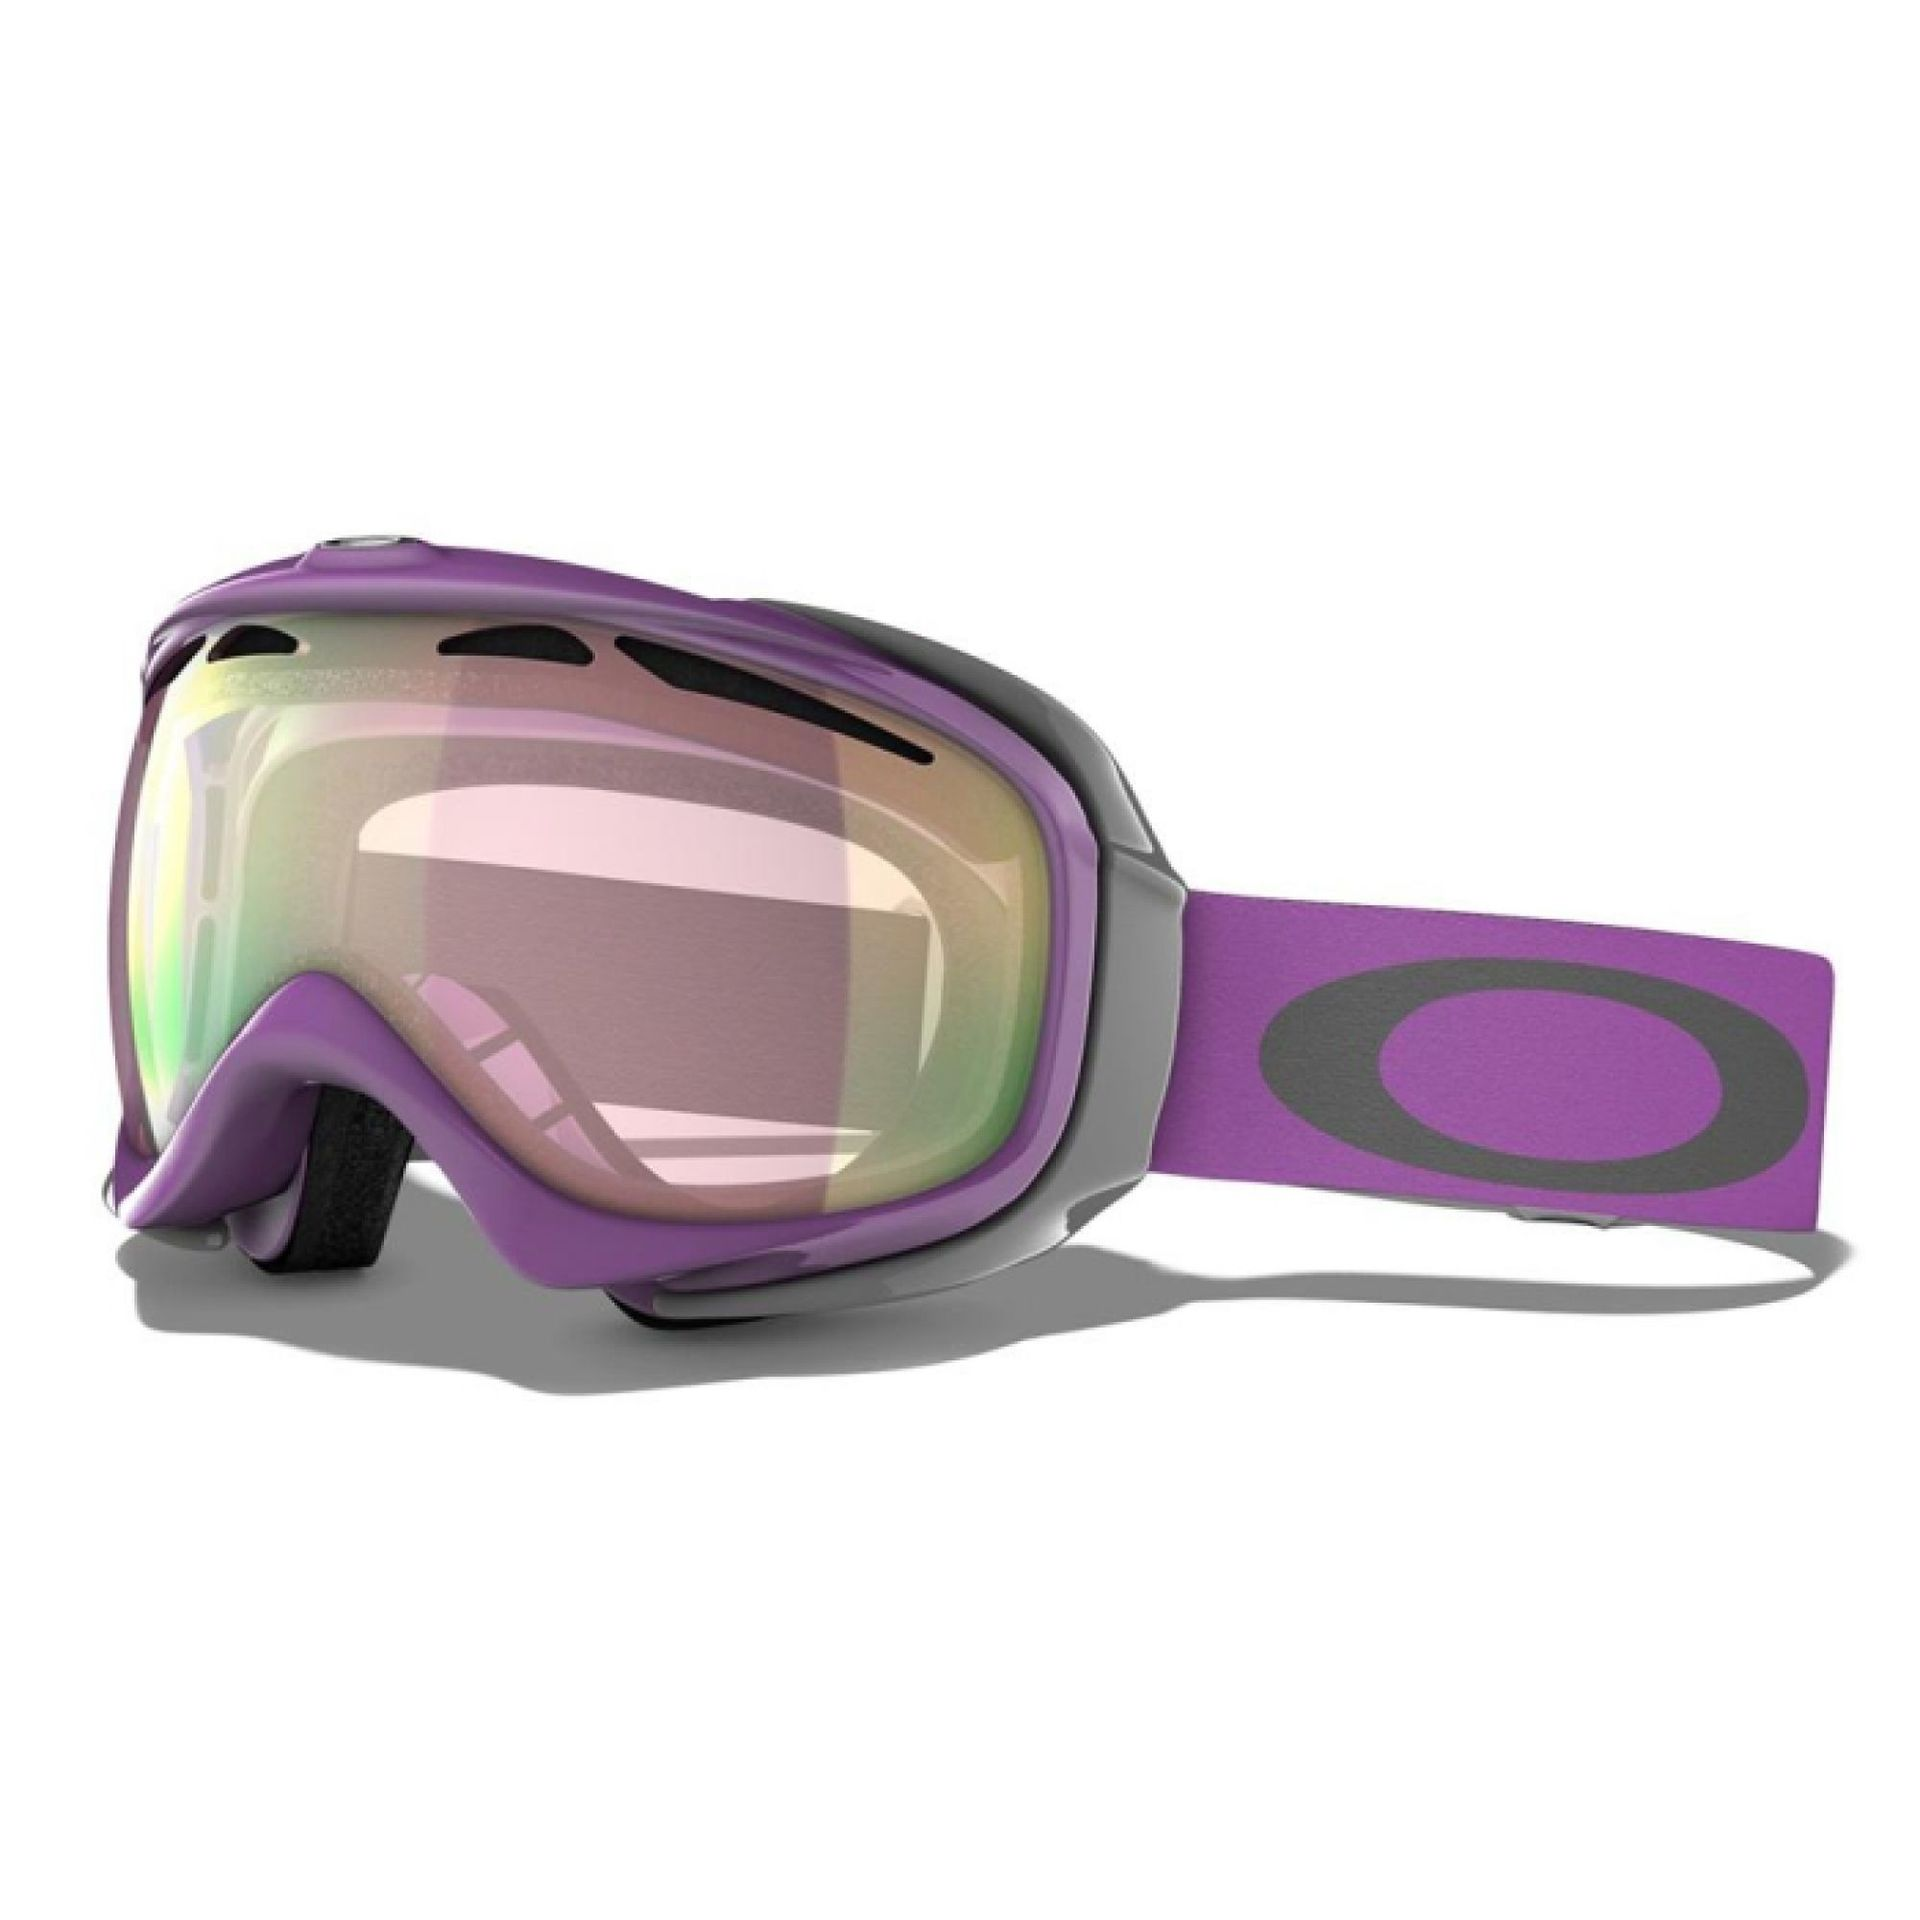 GOGLE OAKLEY ELEVATE PURPLE SAGE VR50